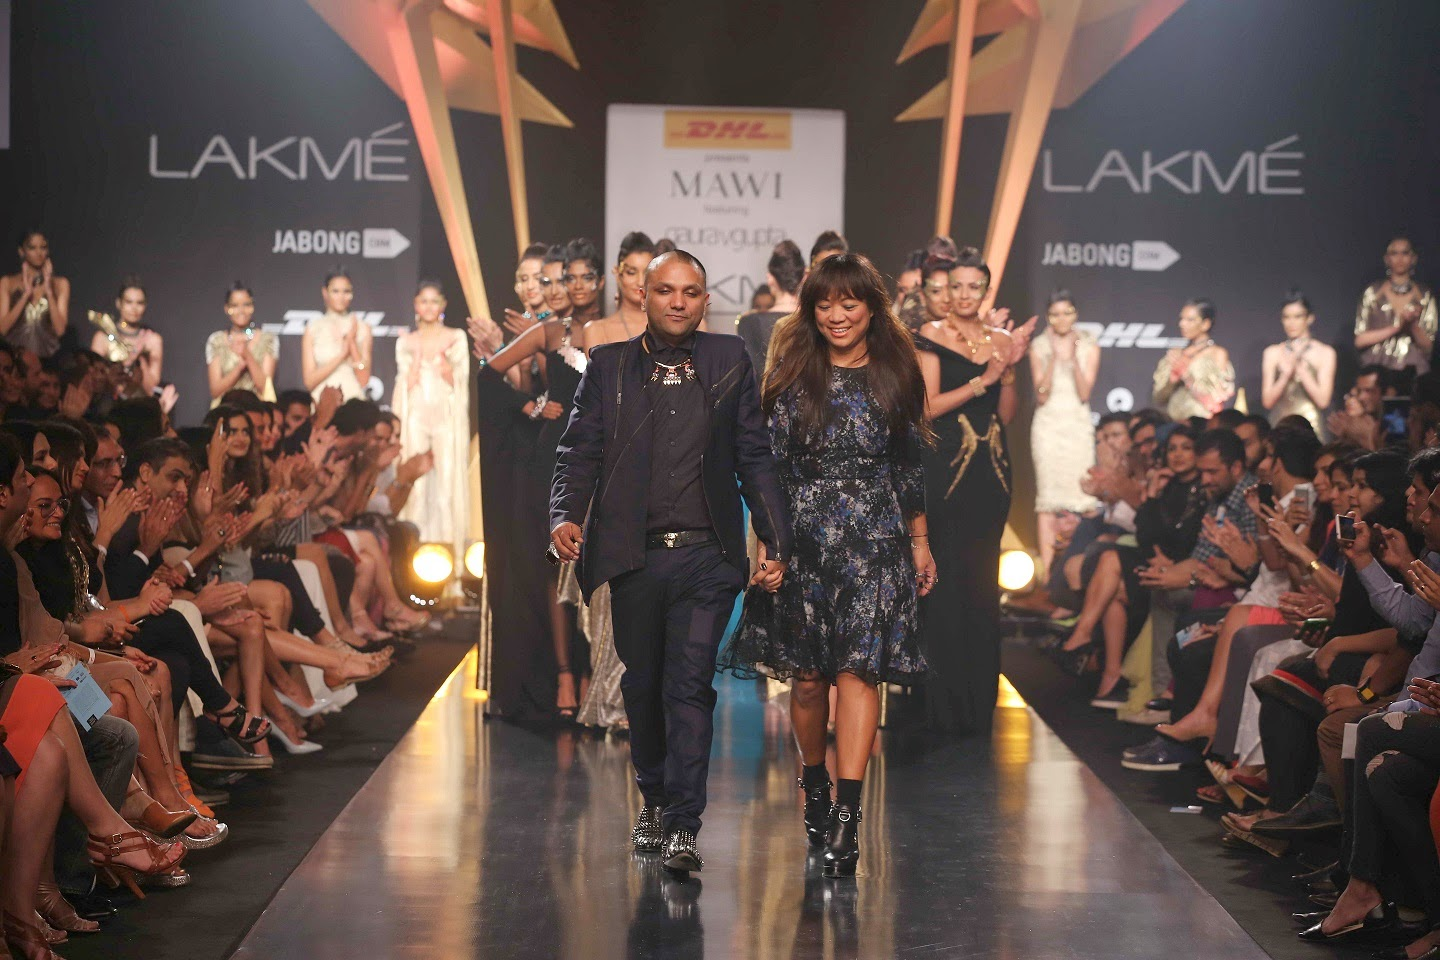 "Showcasing one of the most dazzling collections Gaurav Gupta's debut appearance at Lakmé Fashion Week Summer/Resort 2014 was a fabulous futuristic show called ""Memphire"". There was glitz, glamour and large doses of grandeur as pairs of models strutted down the catwalk in Gaurav's creations adorned with Mawi Keivom's heart stopping jewellery. The glitter of metallic jersey, gold and black shimmer of sequins was highlighted by colours like gold, copper, black, anthracite, flame orange and teal. Inspired by the regal creations of ancient Egypt, the silhouettes were slender and lean and revealed a distinct contrast between diamond sharpness and Egyptian futuristic drapes. A master of drapes and silhouettes that completely push the construction envelope; Gaurav displayed his expertise with Carbon Lattice, Isis, Serpent Wave and Diagonal Murmur."